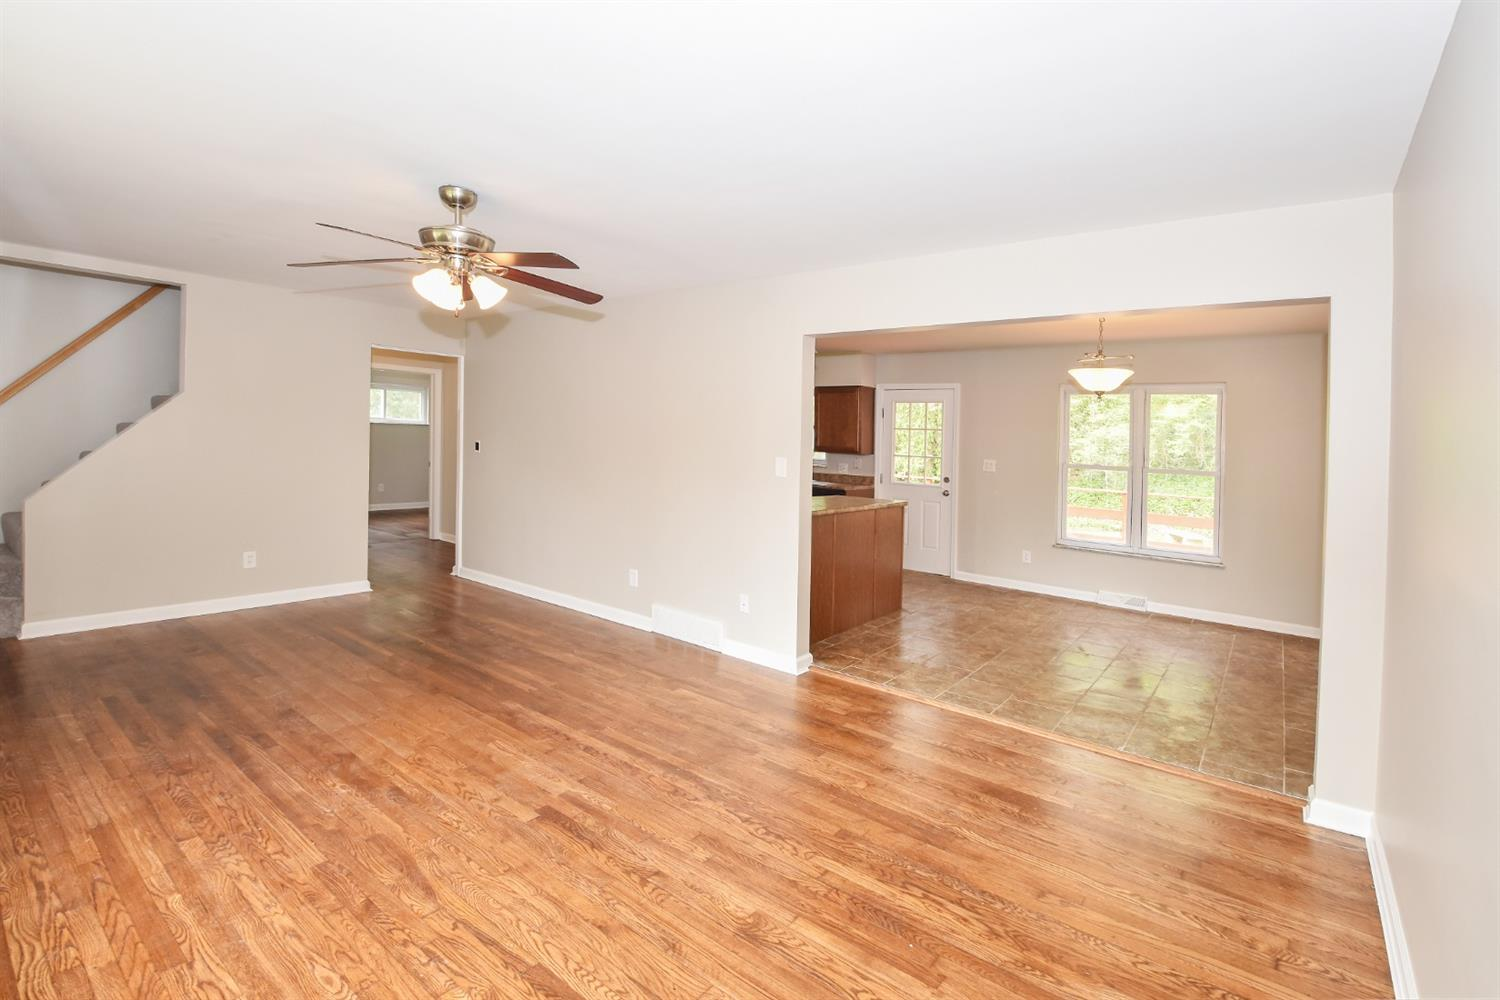 Photo 3 for 263 Sutton Rd California, OH 45230